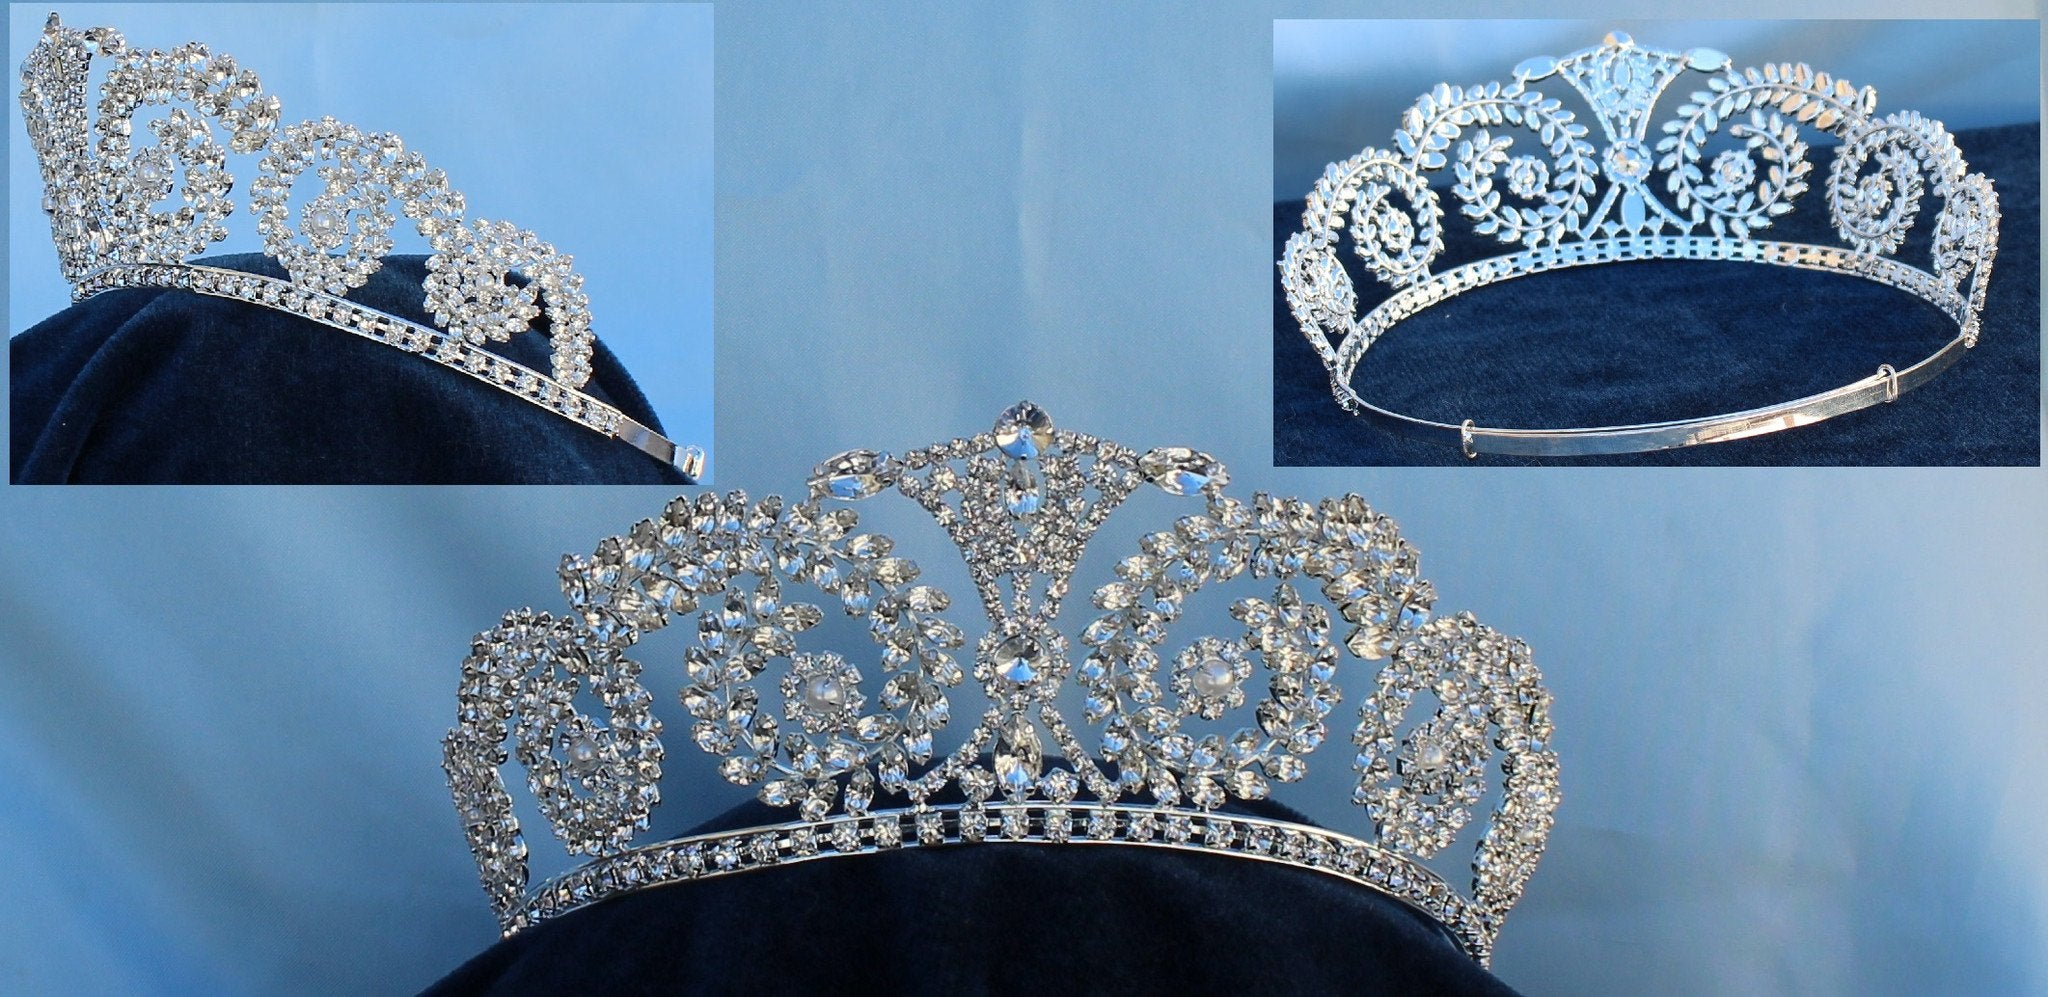 Bridal Beauty Queen Rhinestone The Queen of Castille Tiara - CrownDesigners